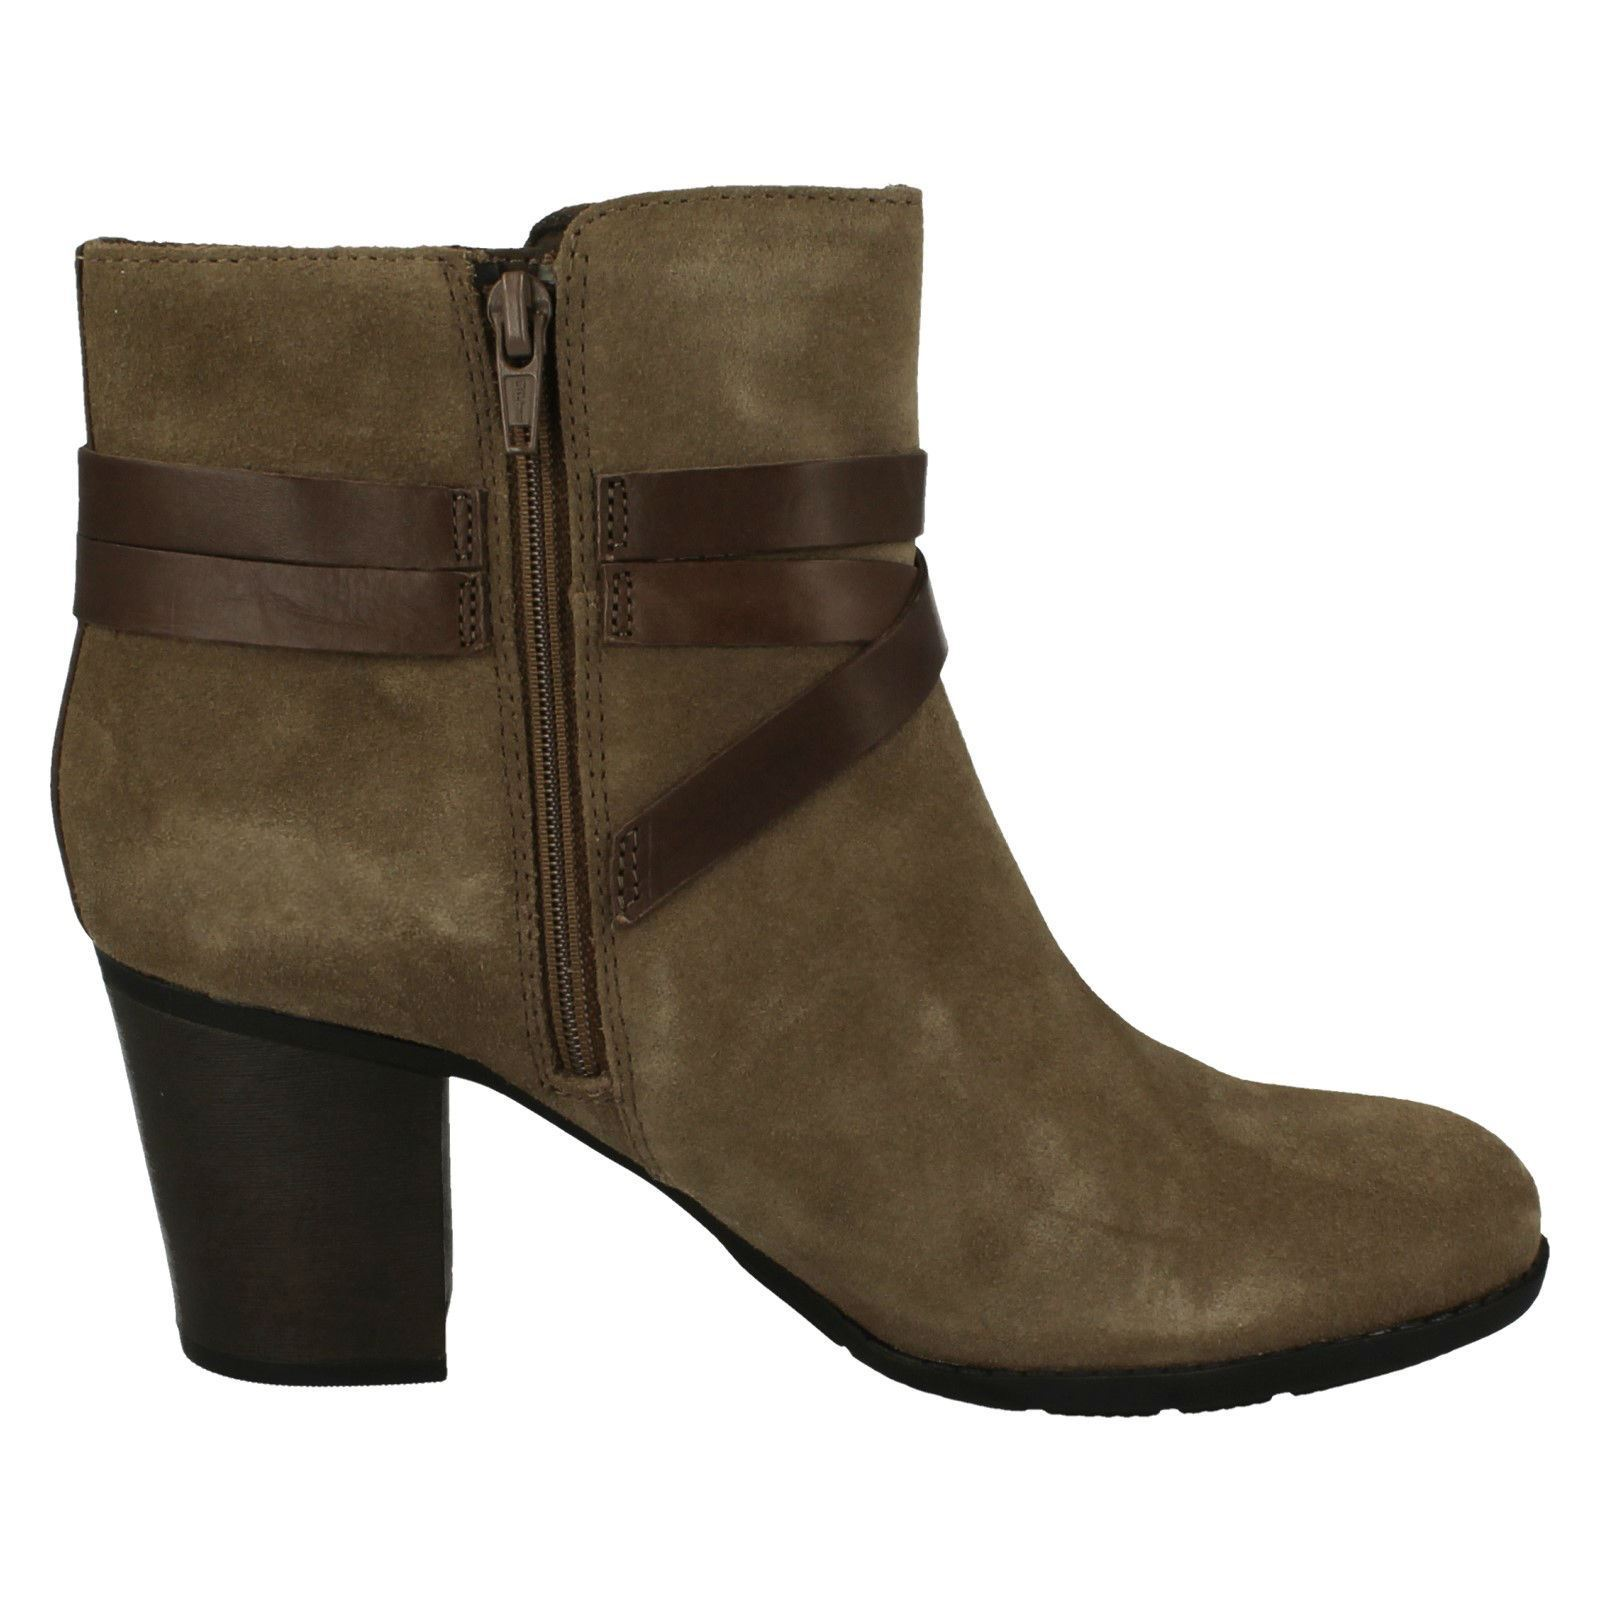 Ladies Clarks Buckle Detailed Ankle Boots /'Enfield Coco/'